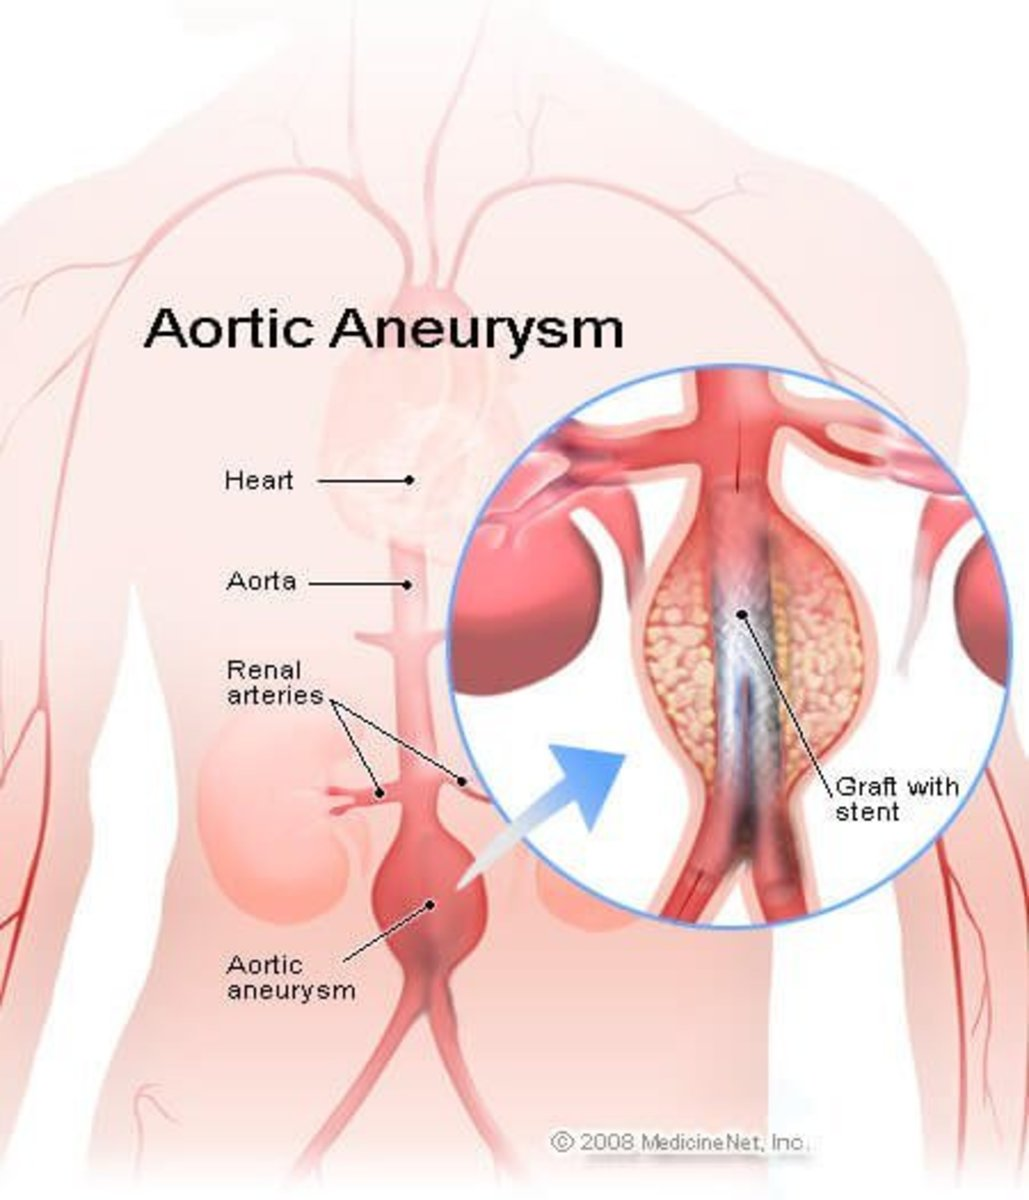 Abdominal Aortic Aneurysm Facts